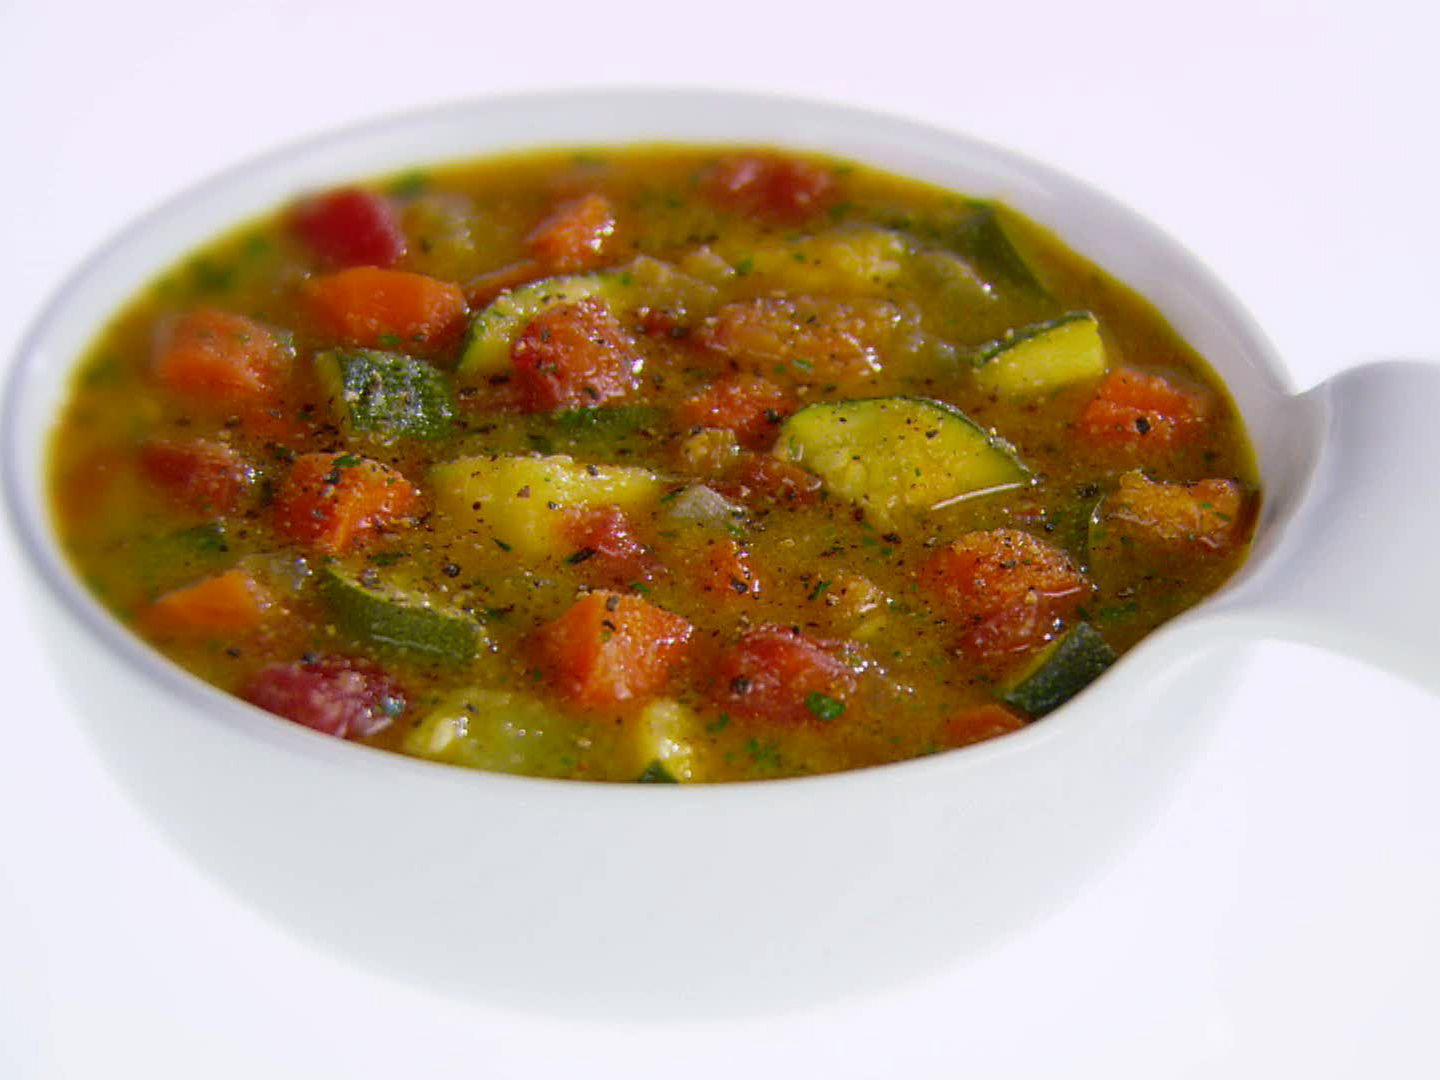 Rustic vegetable and polenta soup recipe polenta soups and food rustic vegetable and polenta soup from foodnetwork forumfinder Choice Image